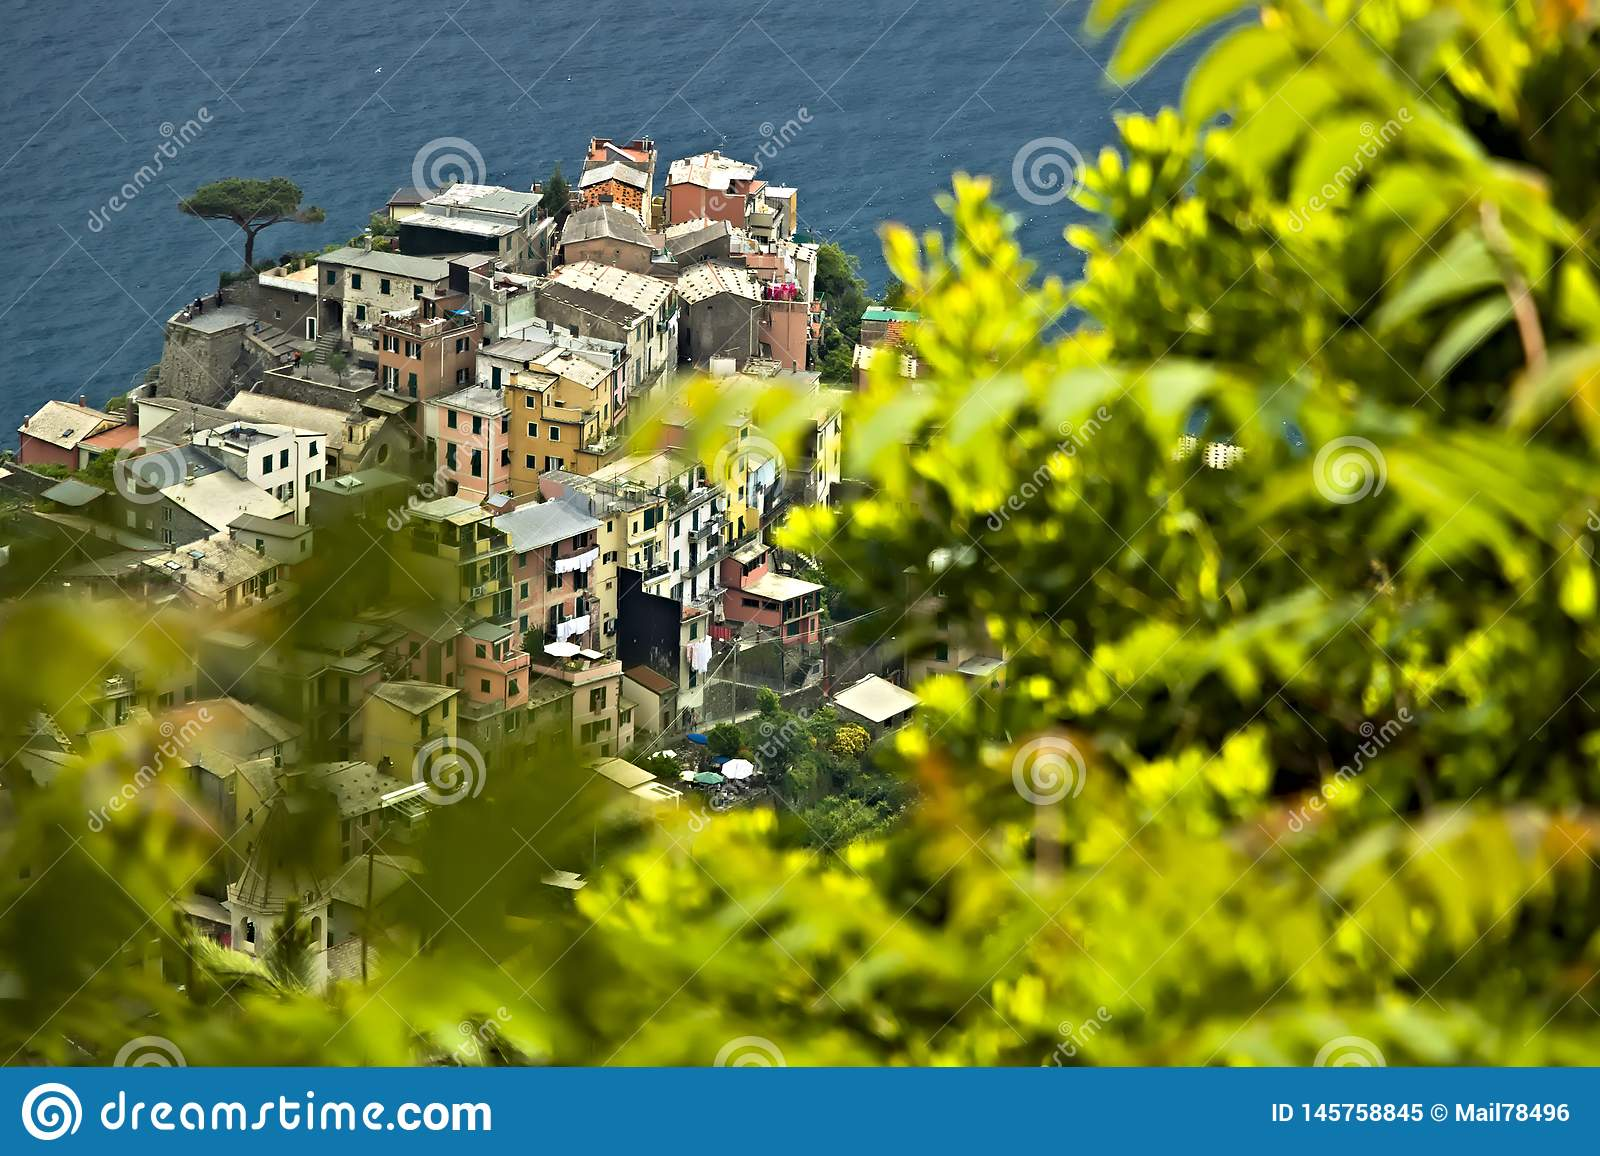 The village of Corniglia, Cinque Terre seen from a path on the hill overlooking the sea